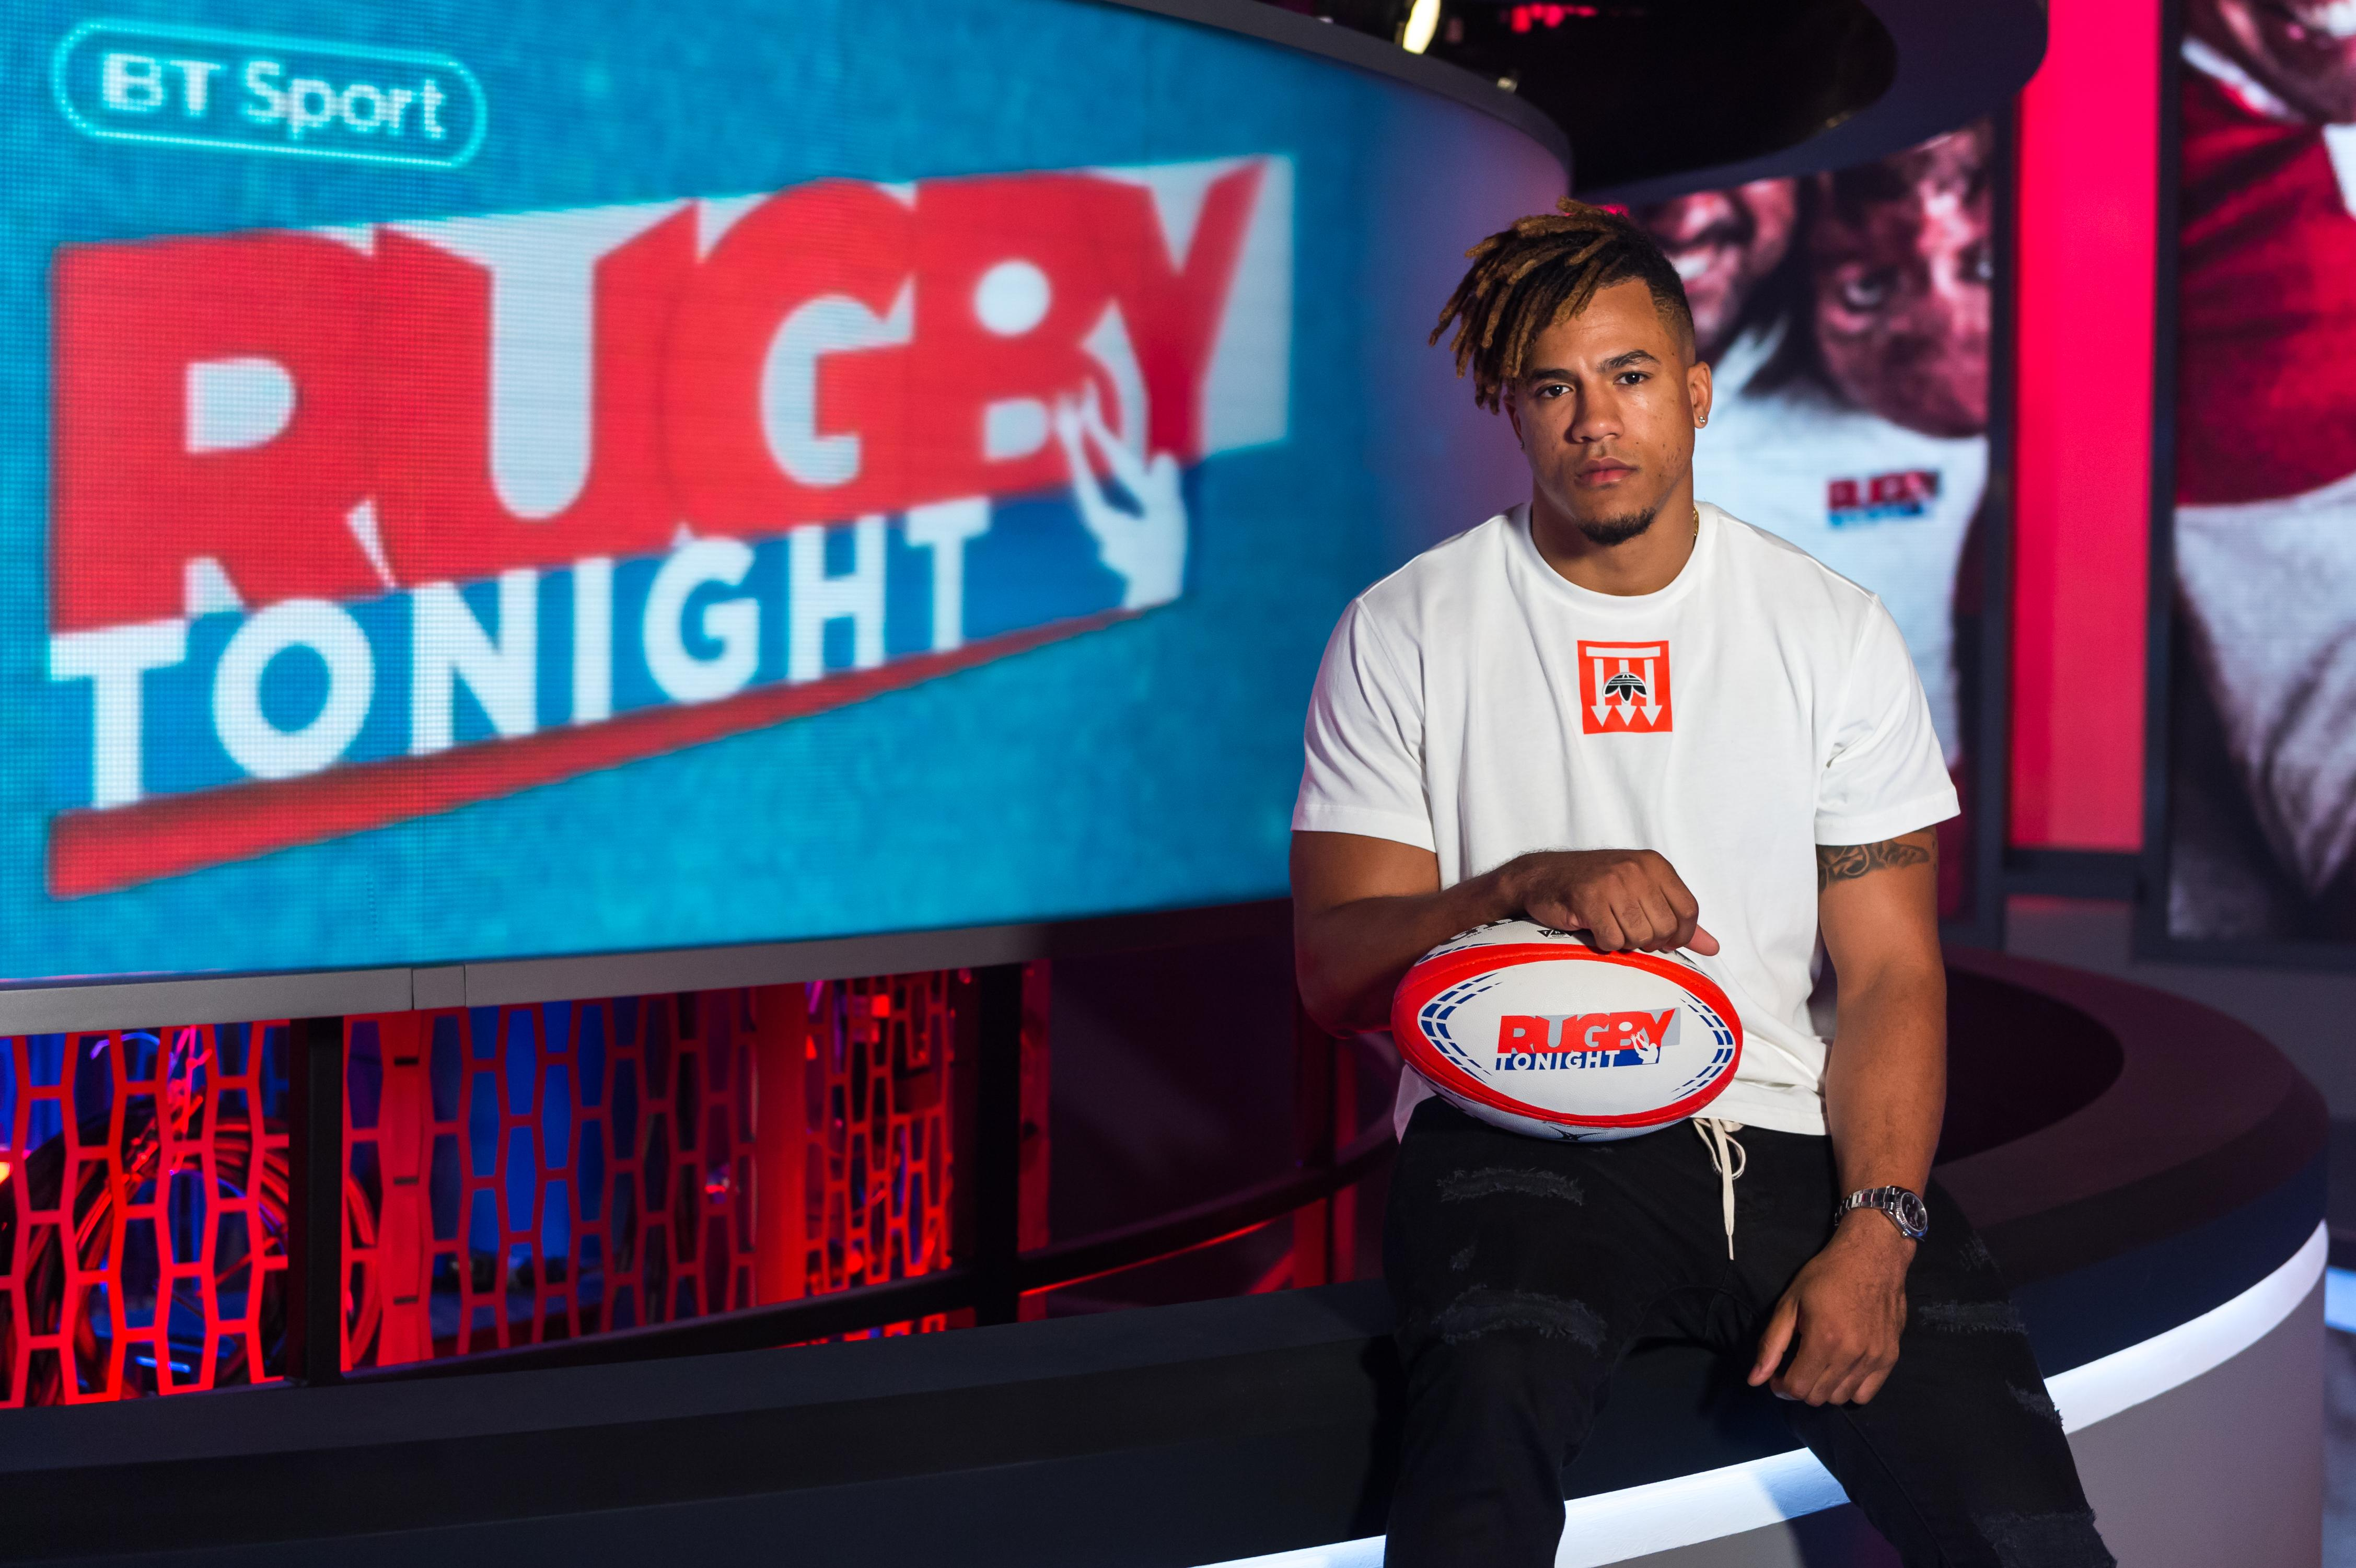 Anthony Watson spoke to SunSport from the BT Rugby Tonight studio